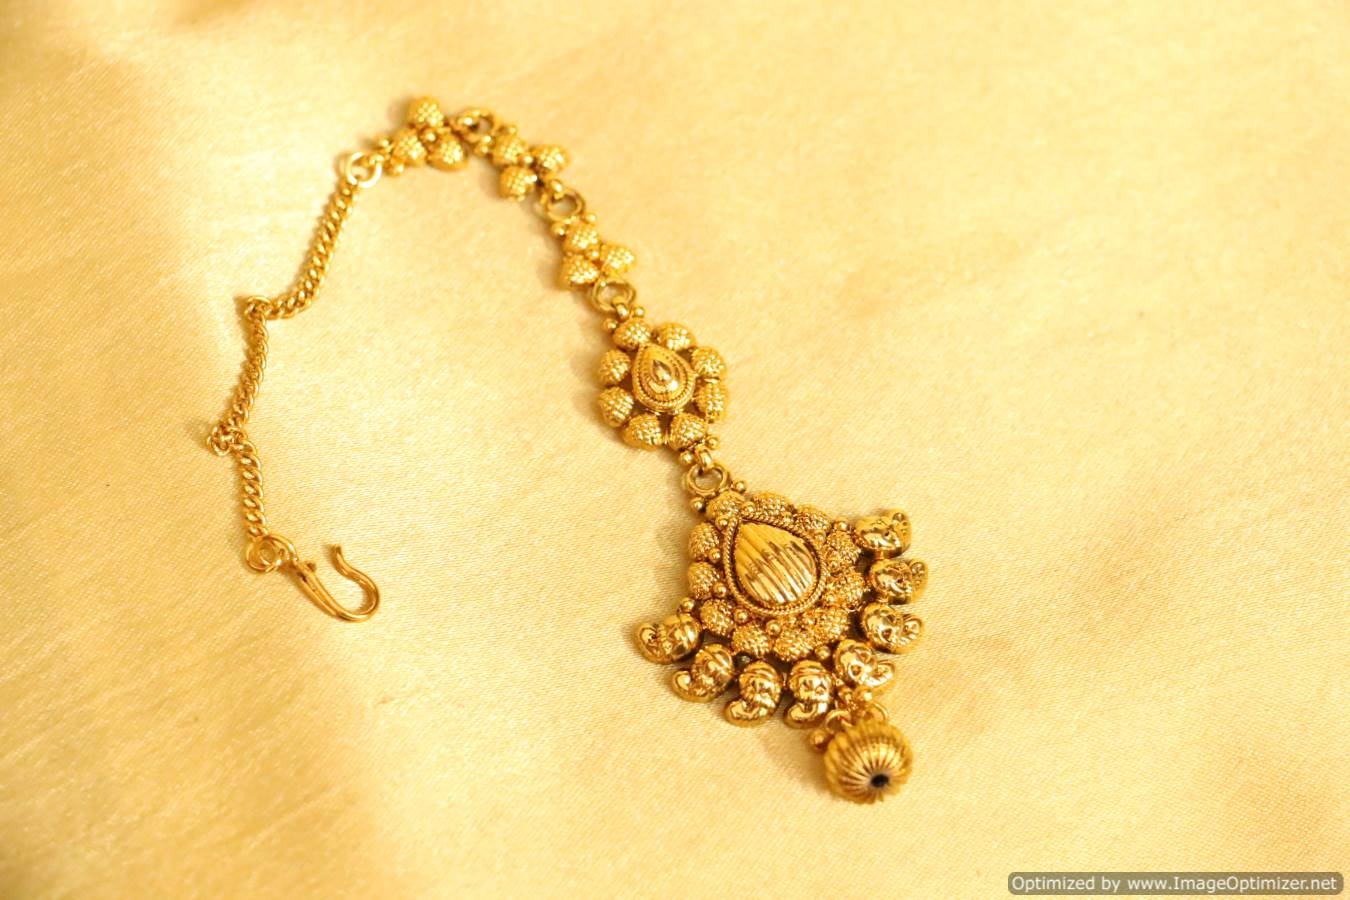 Golden maang tikka designs bridal jewellery bridal maang - Golden Maang Tikka Designs Bridal Jewellery Bridal Maang 42